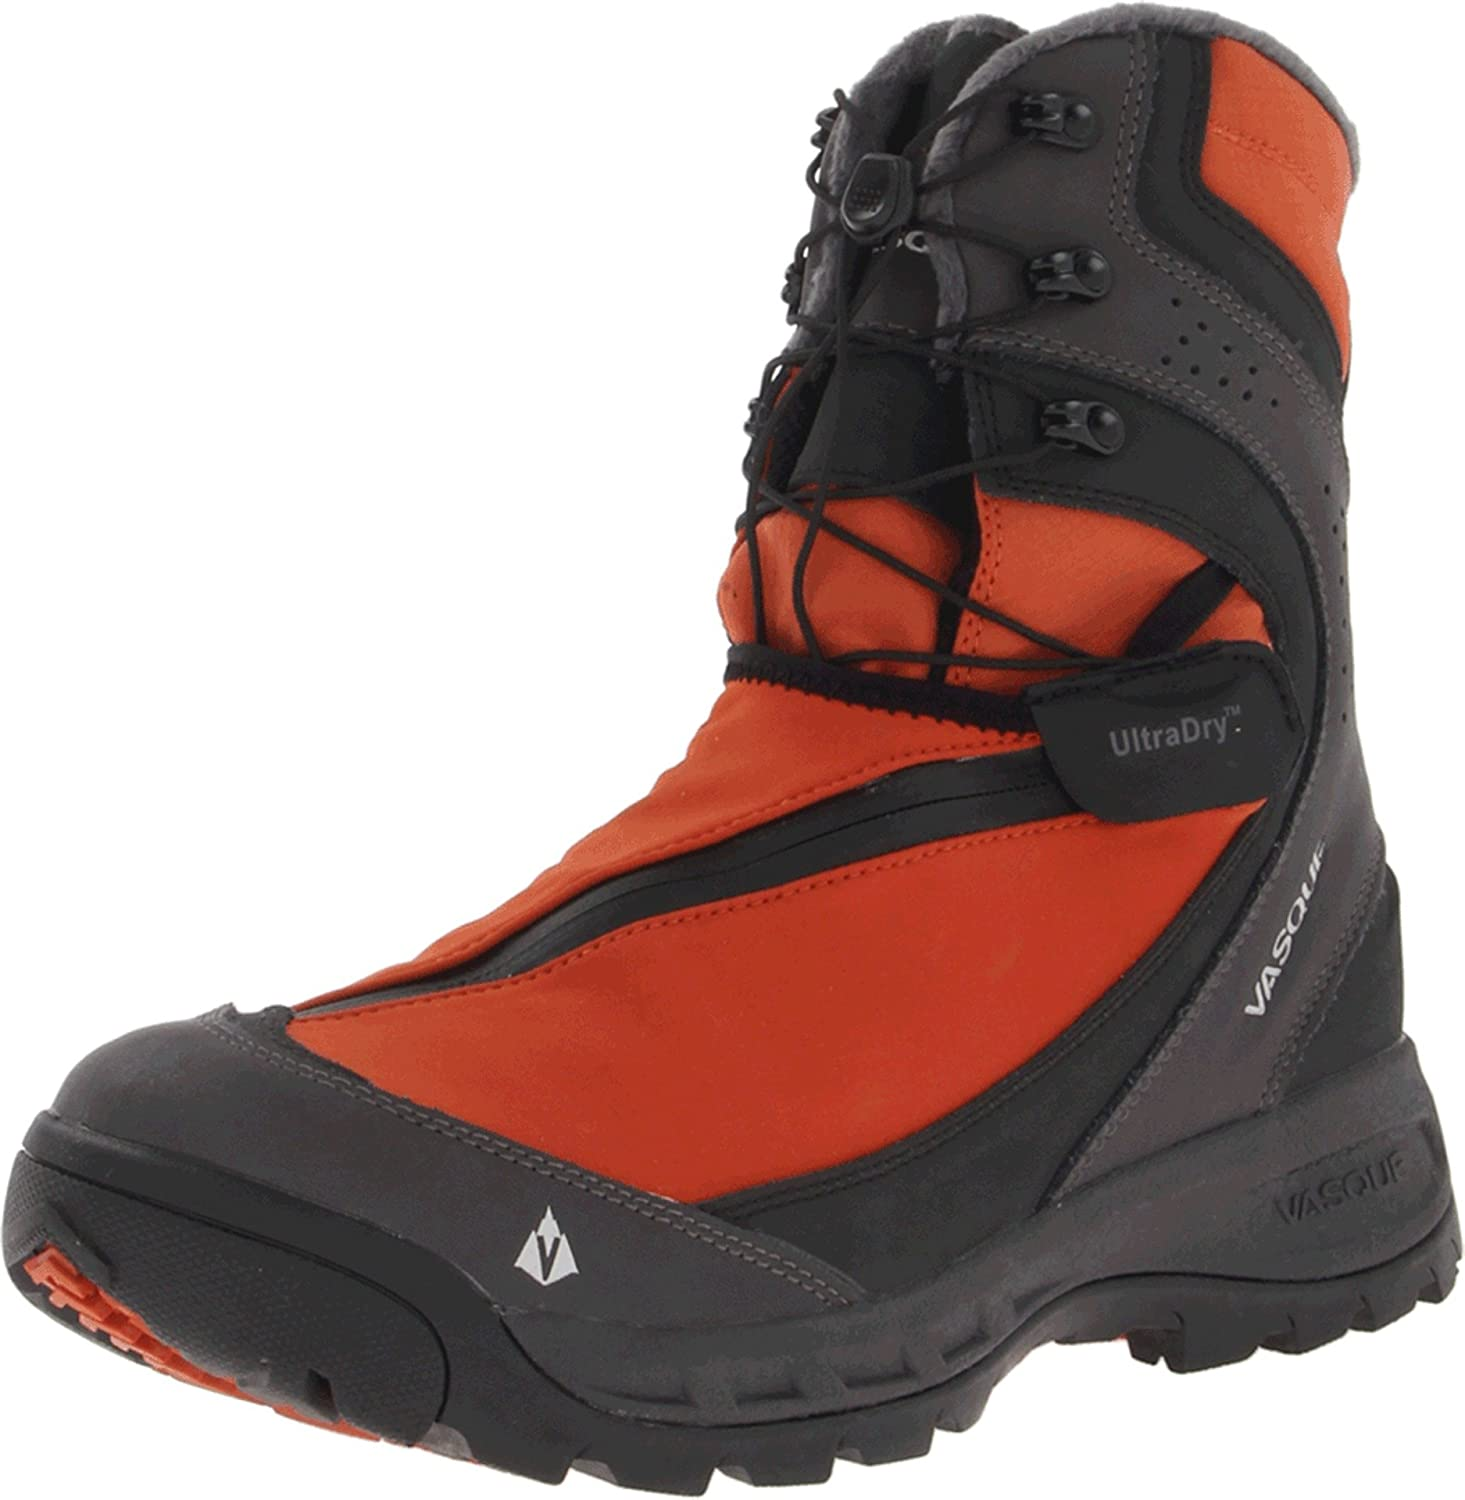 Mens Boots FirstRate 73526464 Vasque Arrowhead Ultradry